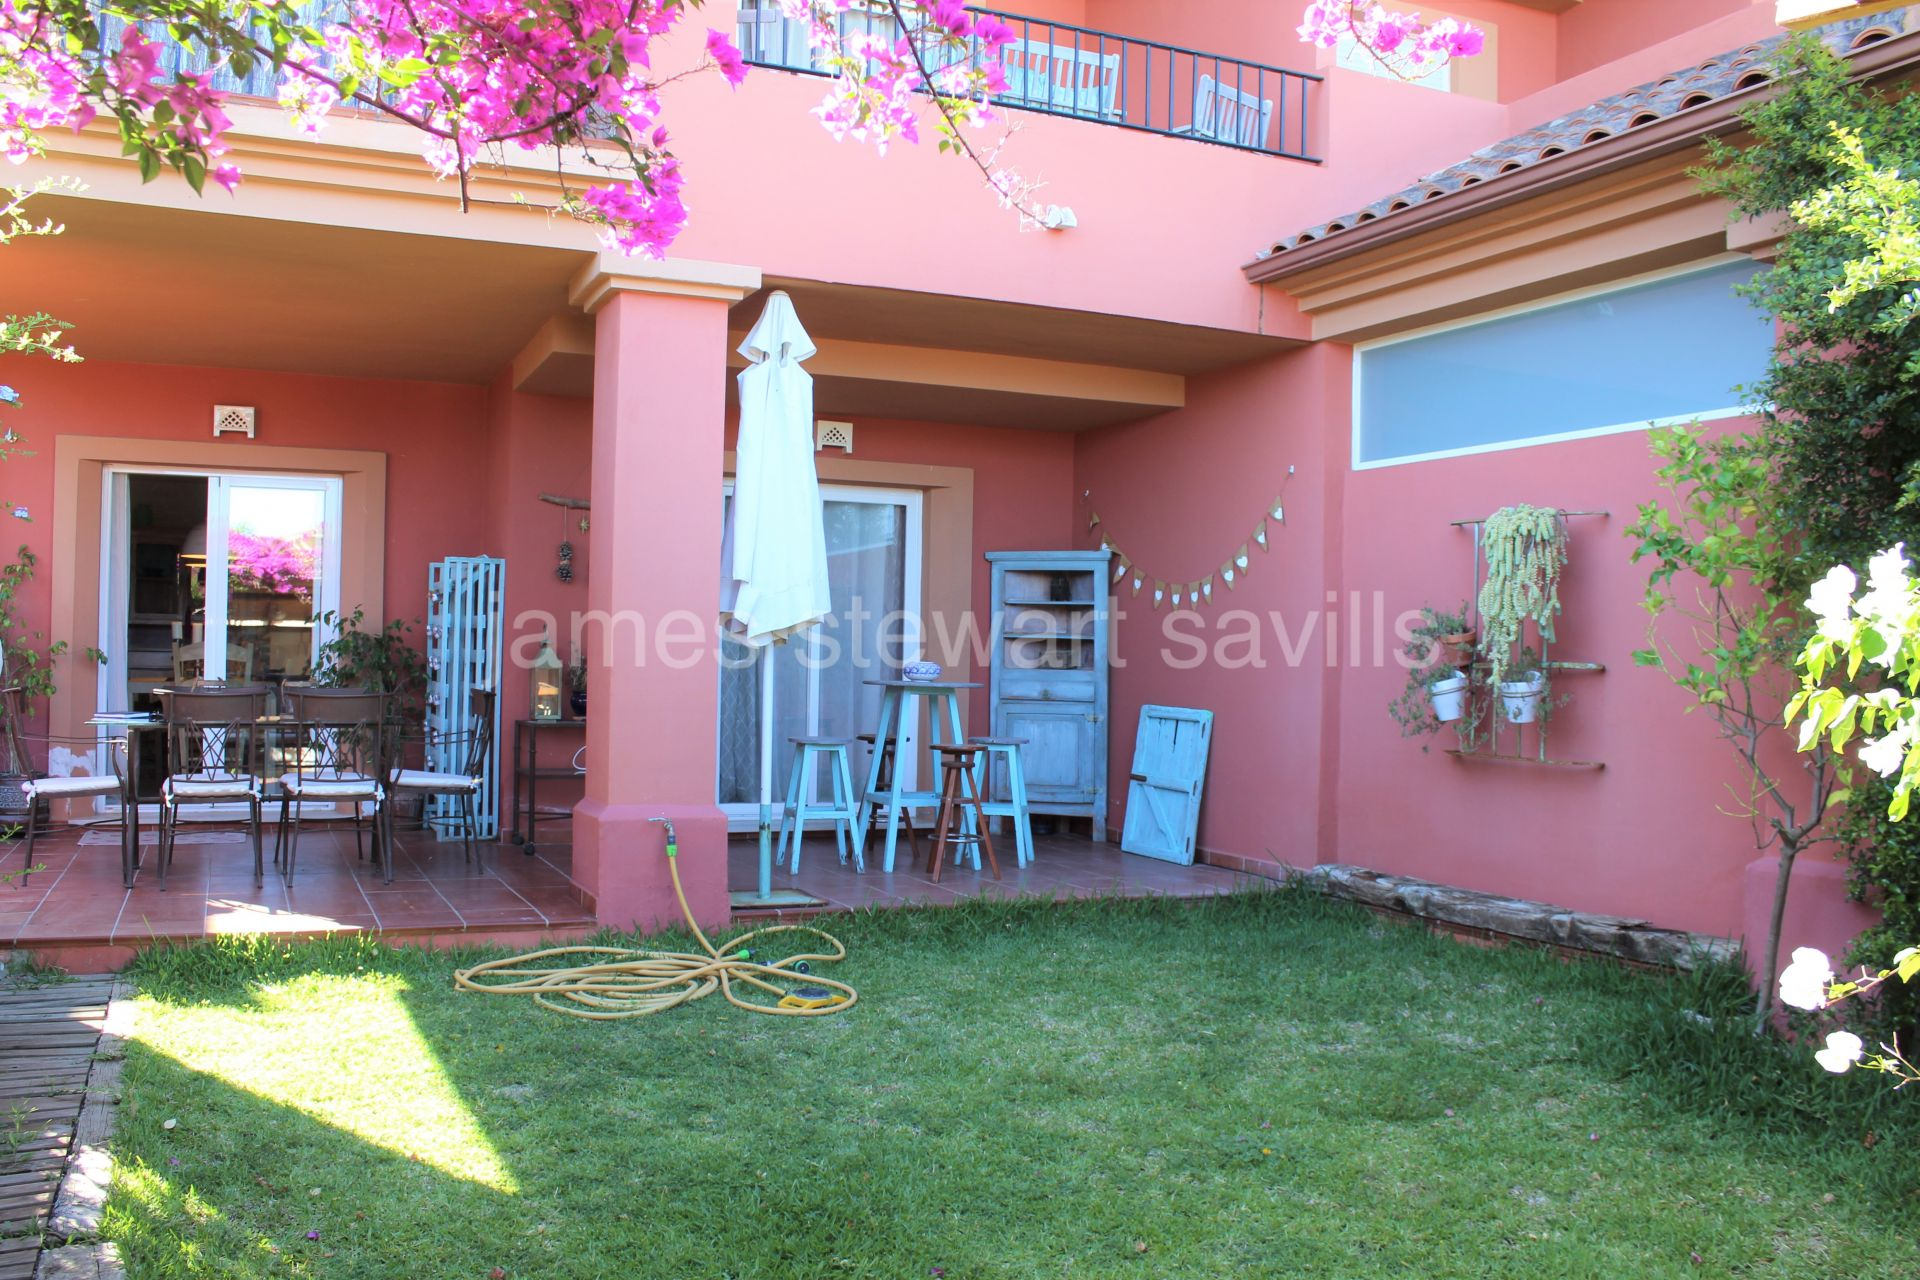 Ground Floor Duplex for rent in Pueblo Nuevo de Guadiaro